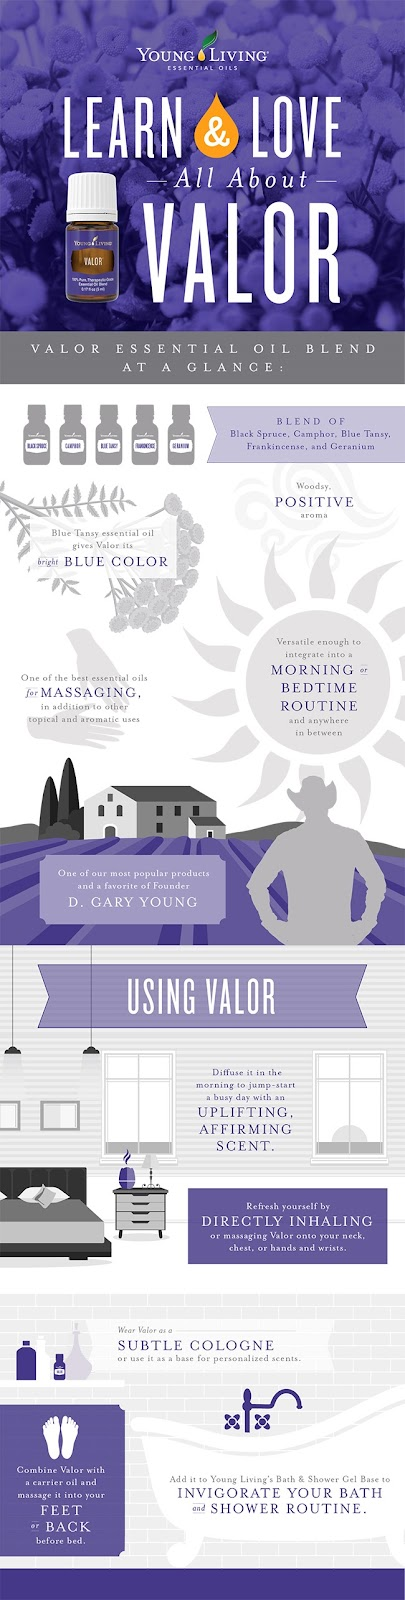 [blog-Learn-Love_All-About-Valor_Infographic_US-3-002]